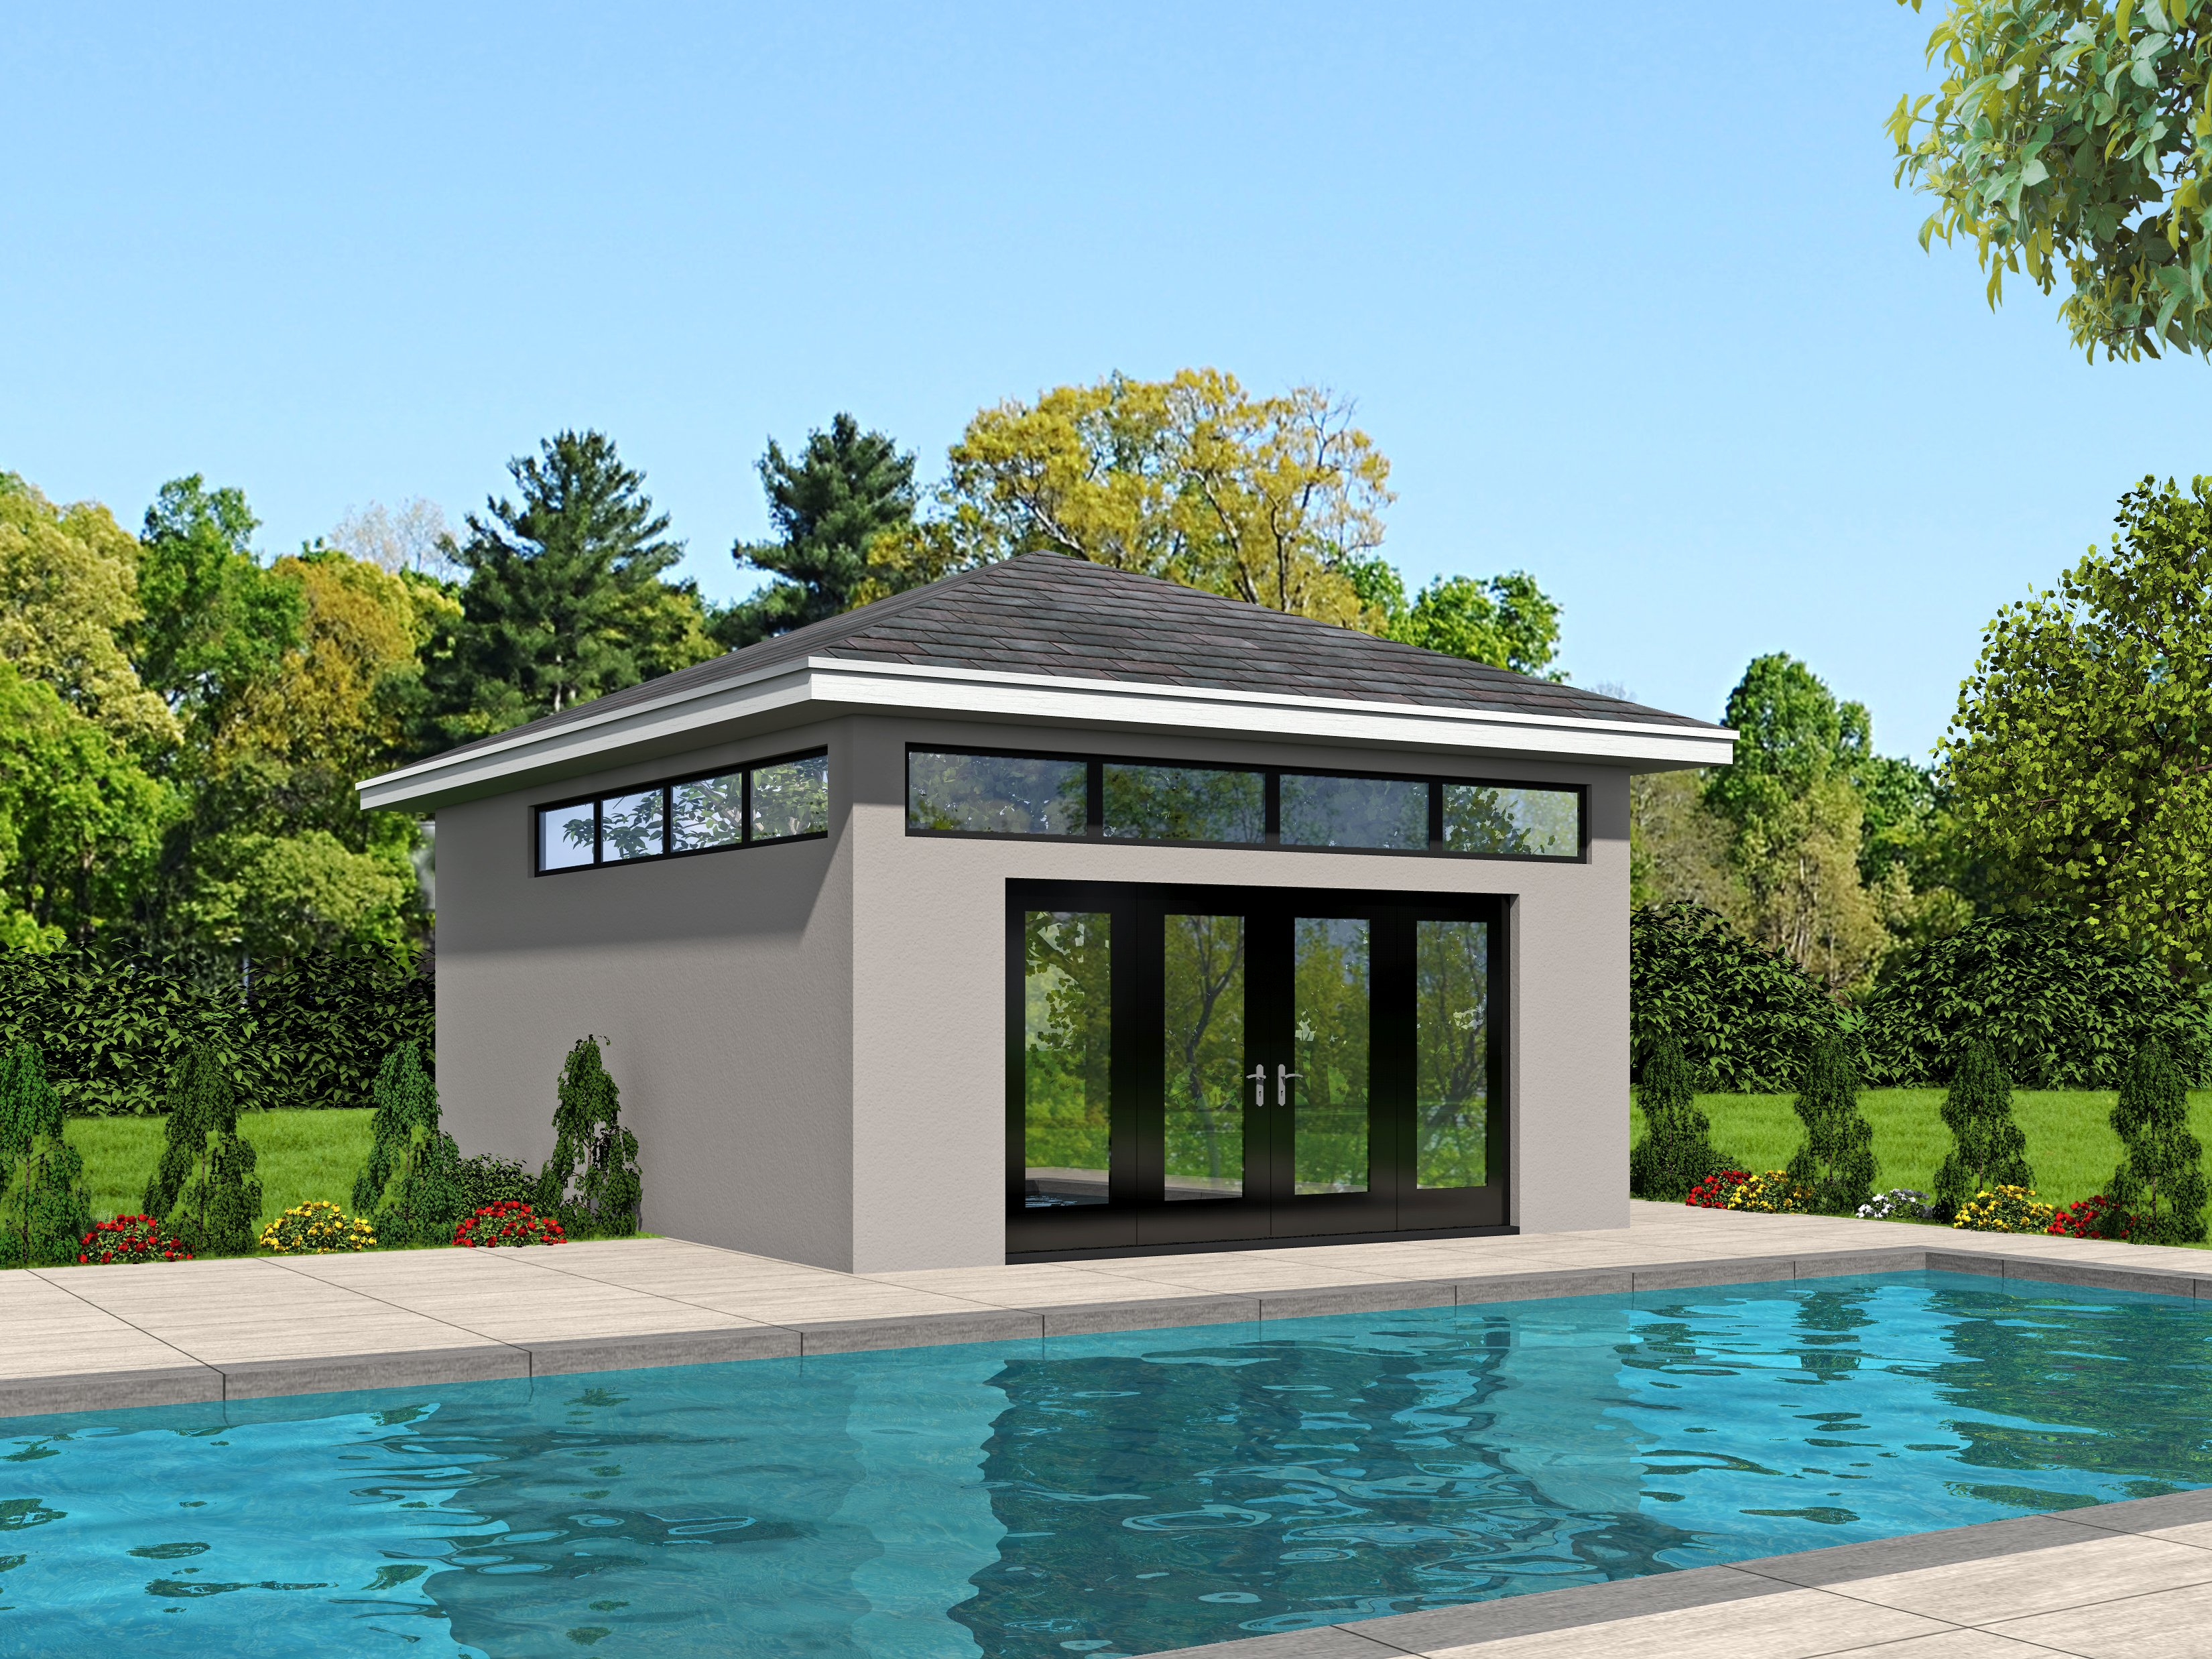 Pool house plans house plans plus for Pool house plans